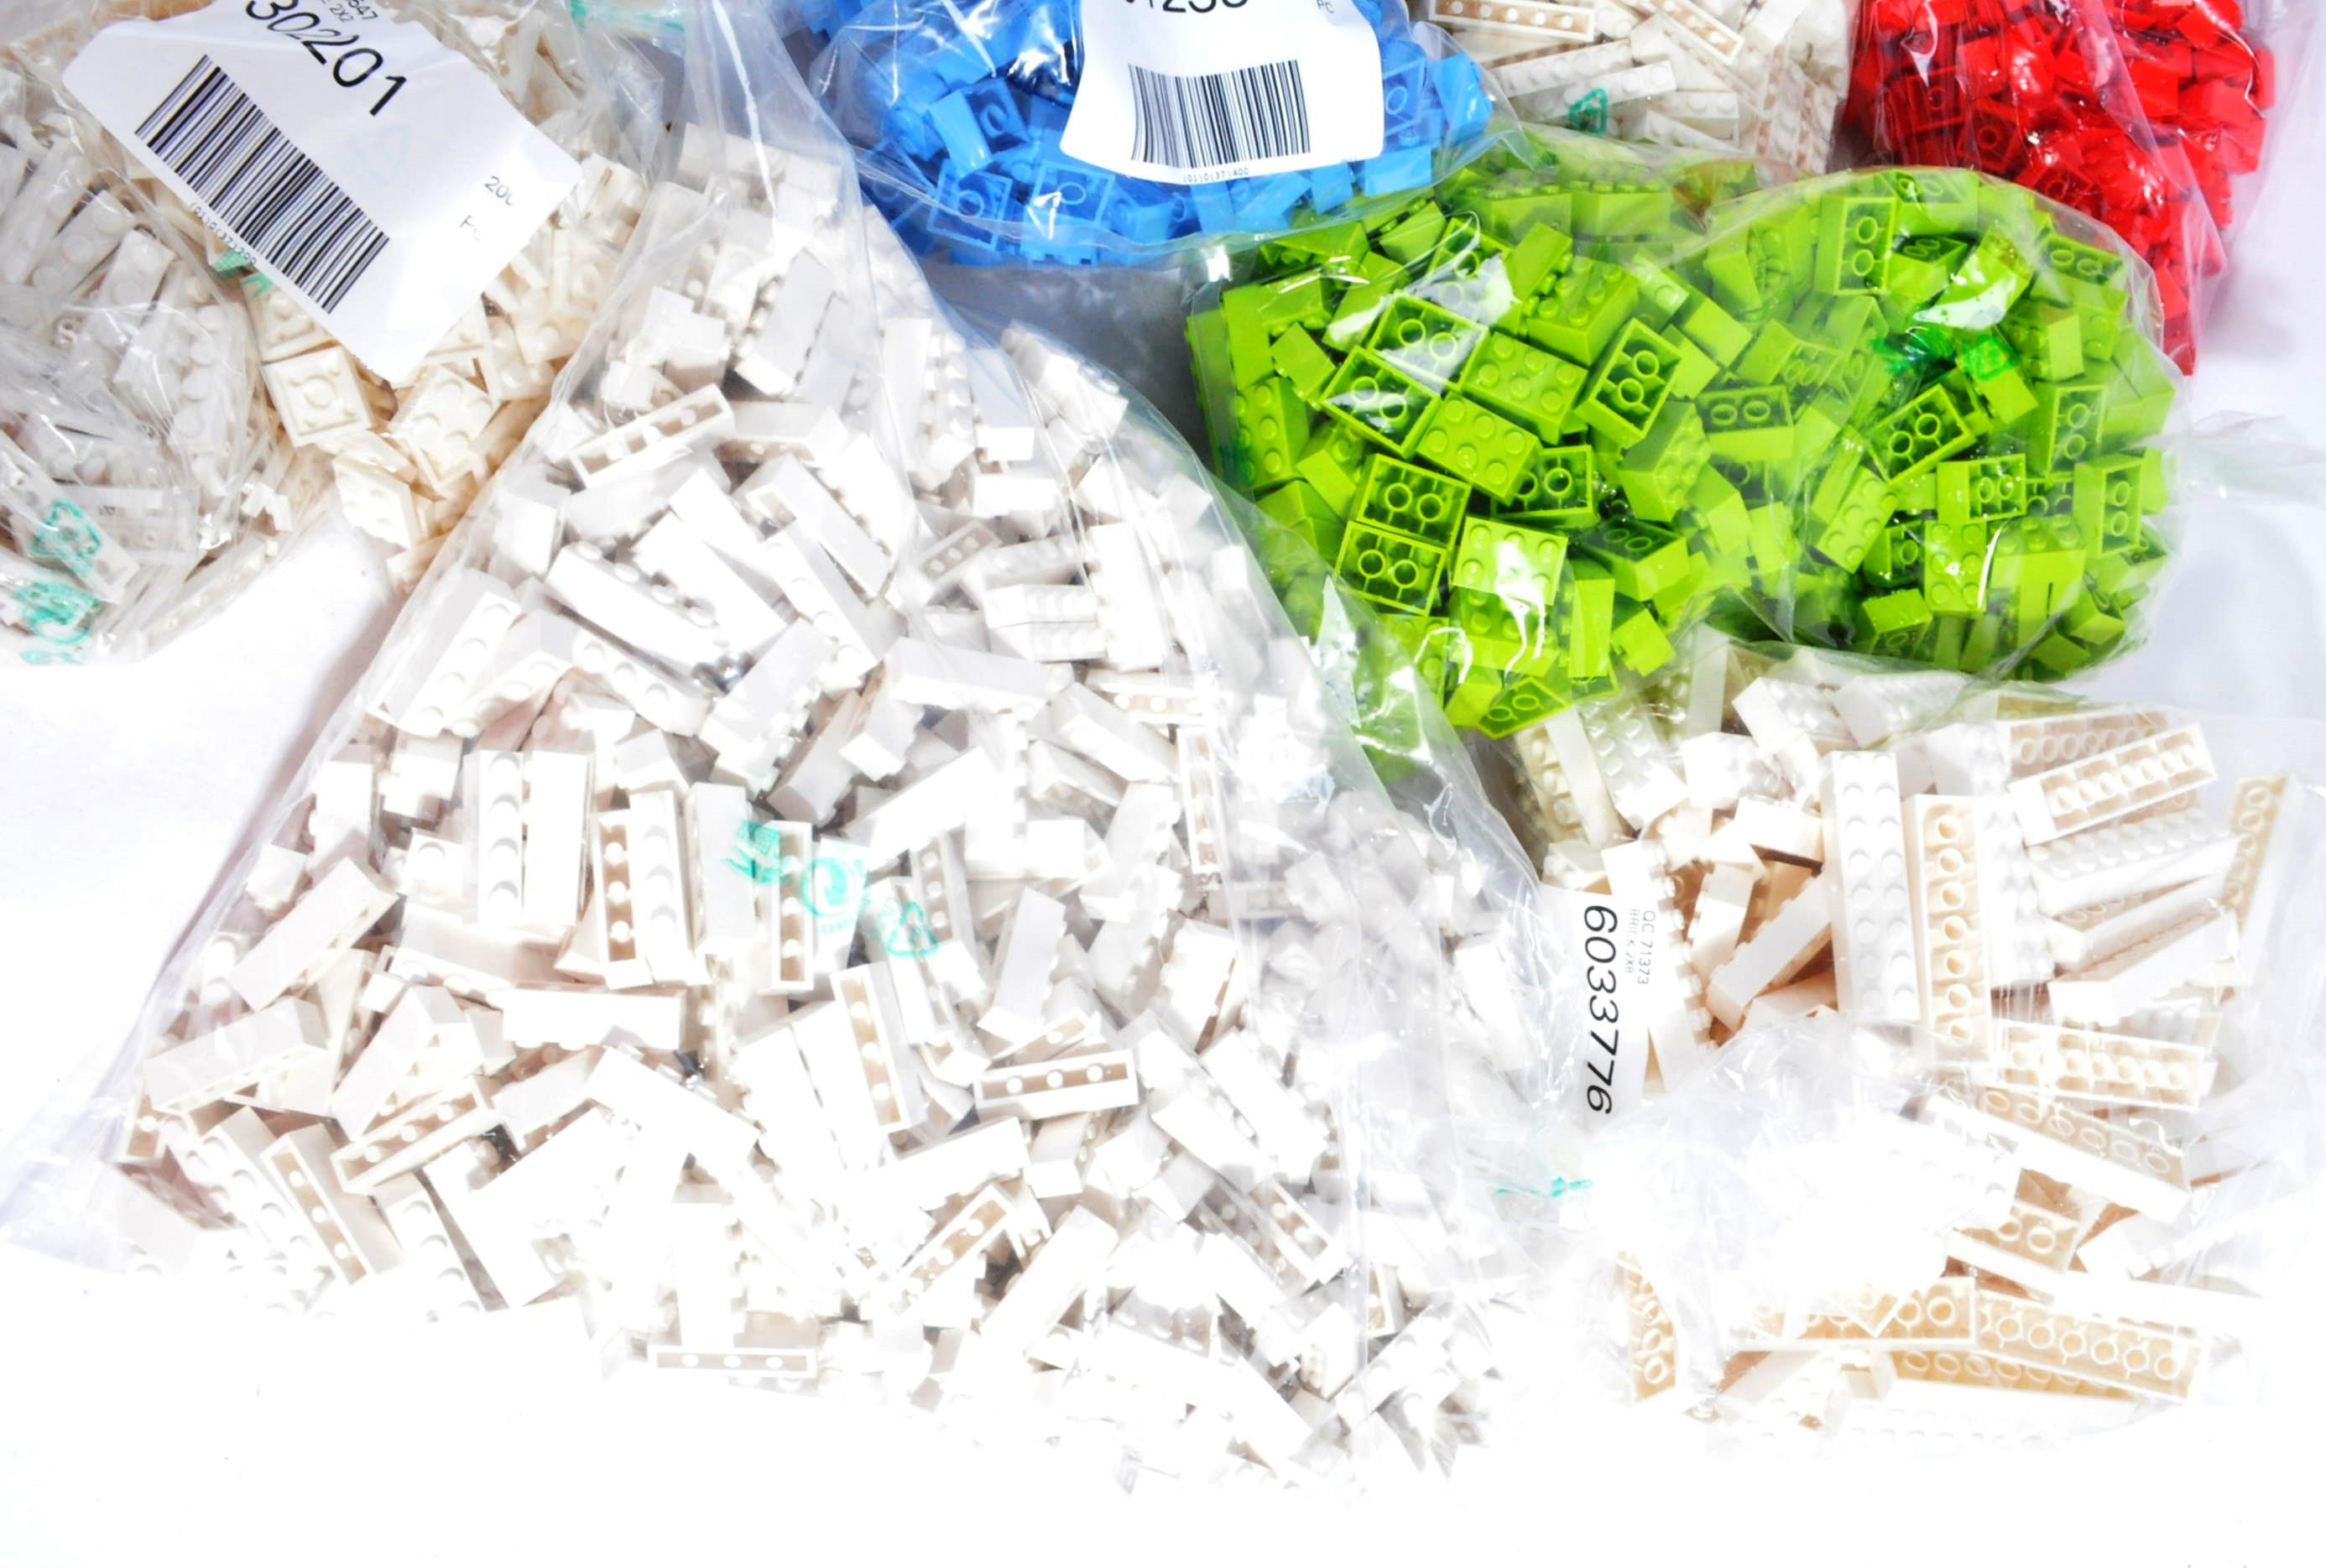 LEGO - LARGE COLLECTION OF BRAND NEW LEGO BUILDING BLOCKS - Image 3 of 6